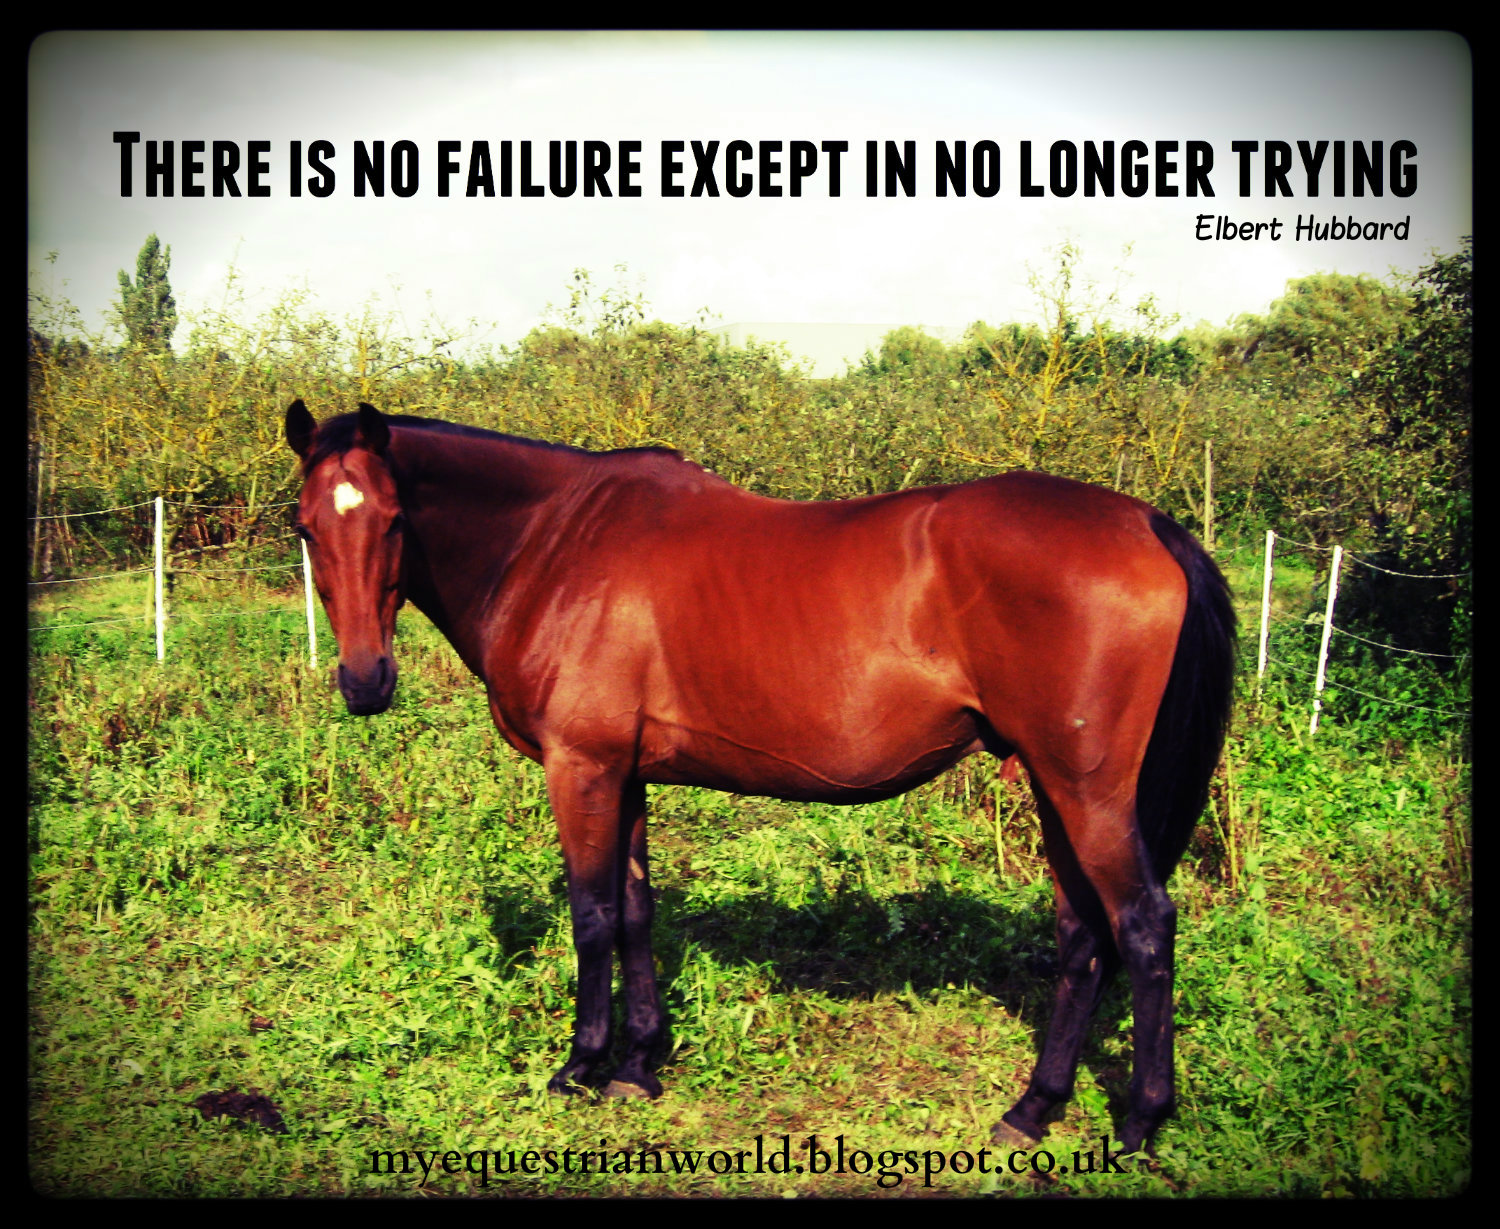 Funny Horse Quotes Inspirational. QuotesGram